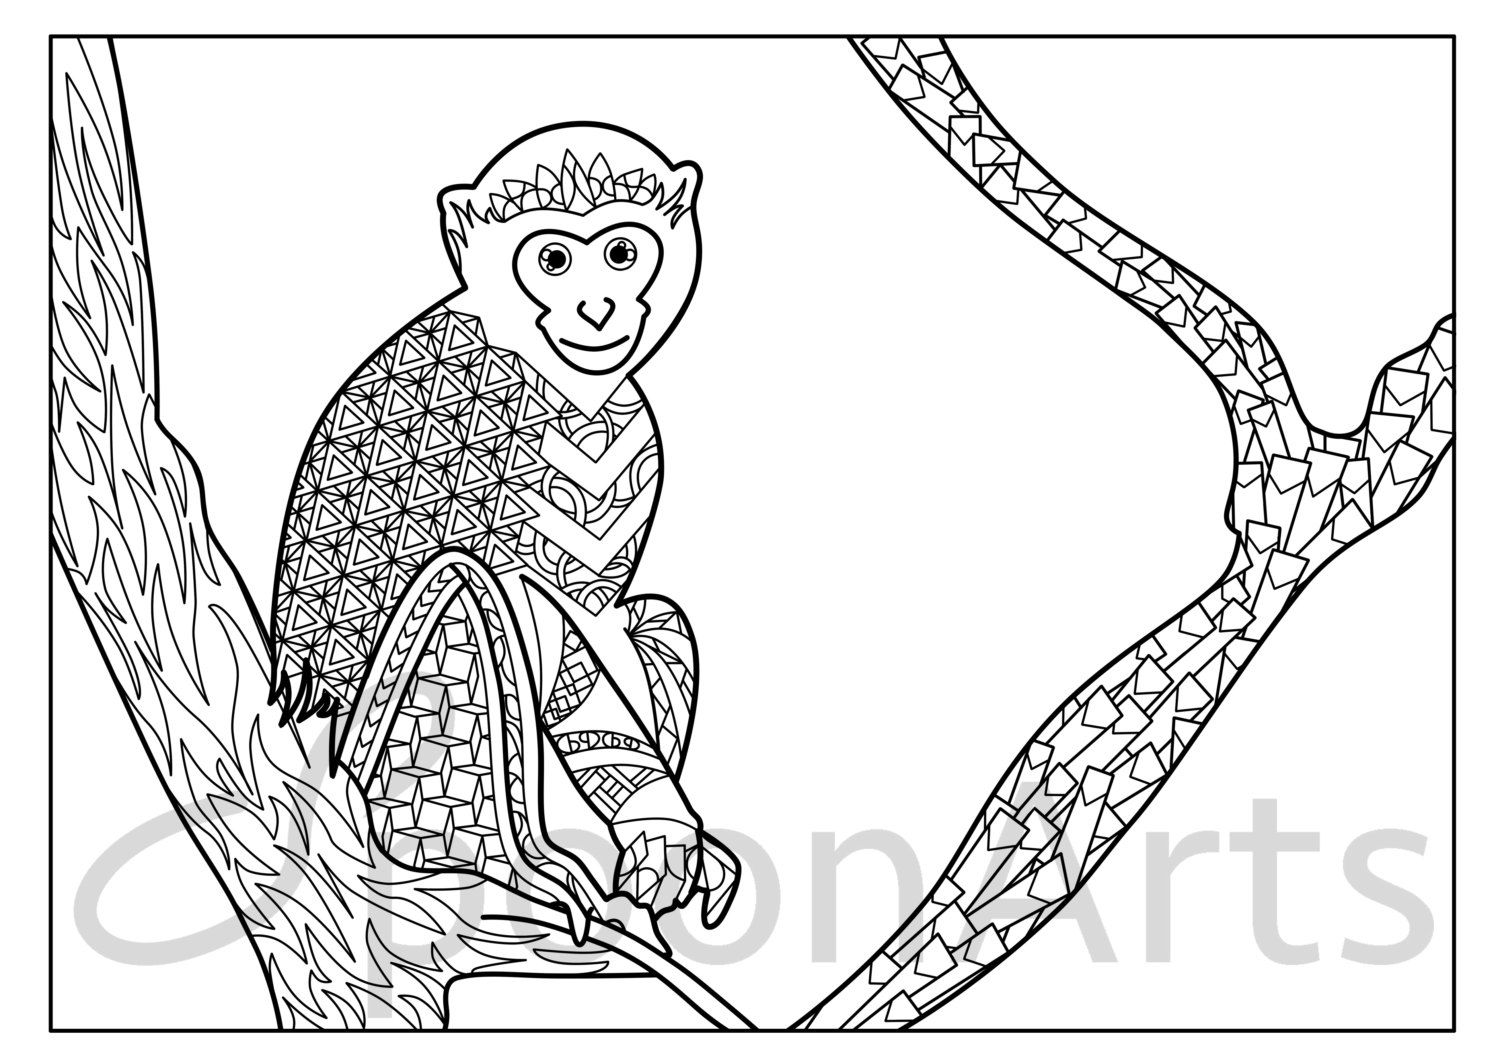 Vervet Monkey Instant Printable Coloring Page Adult Coloring